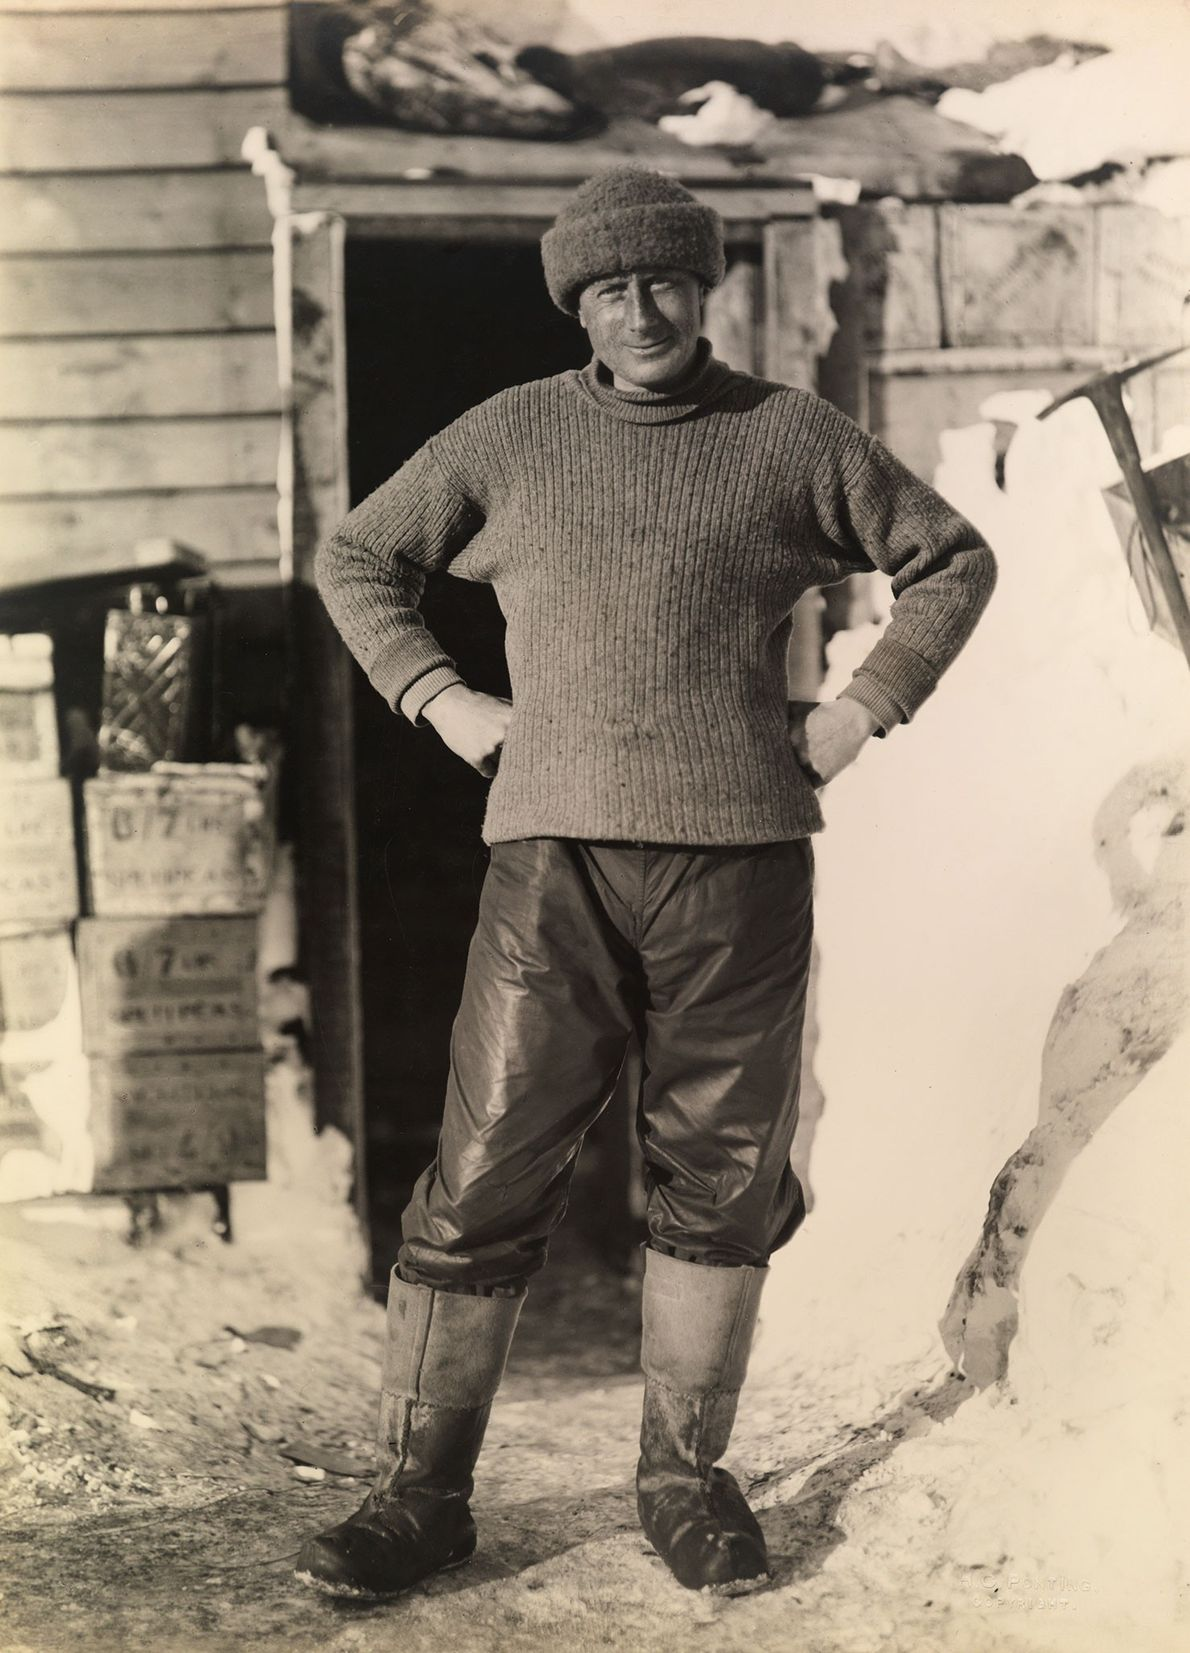 A member of the Terra Nova Expedition poses for a portrait.